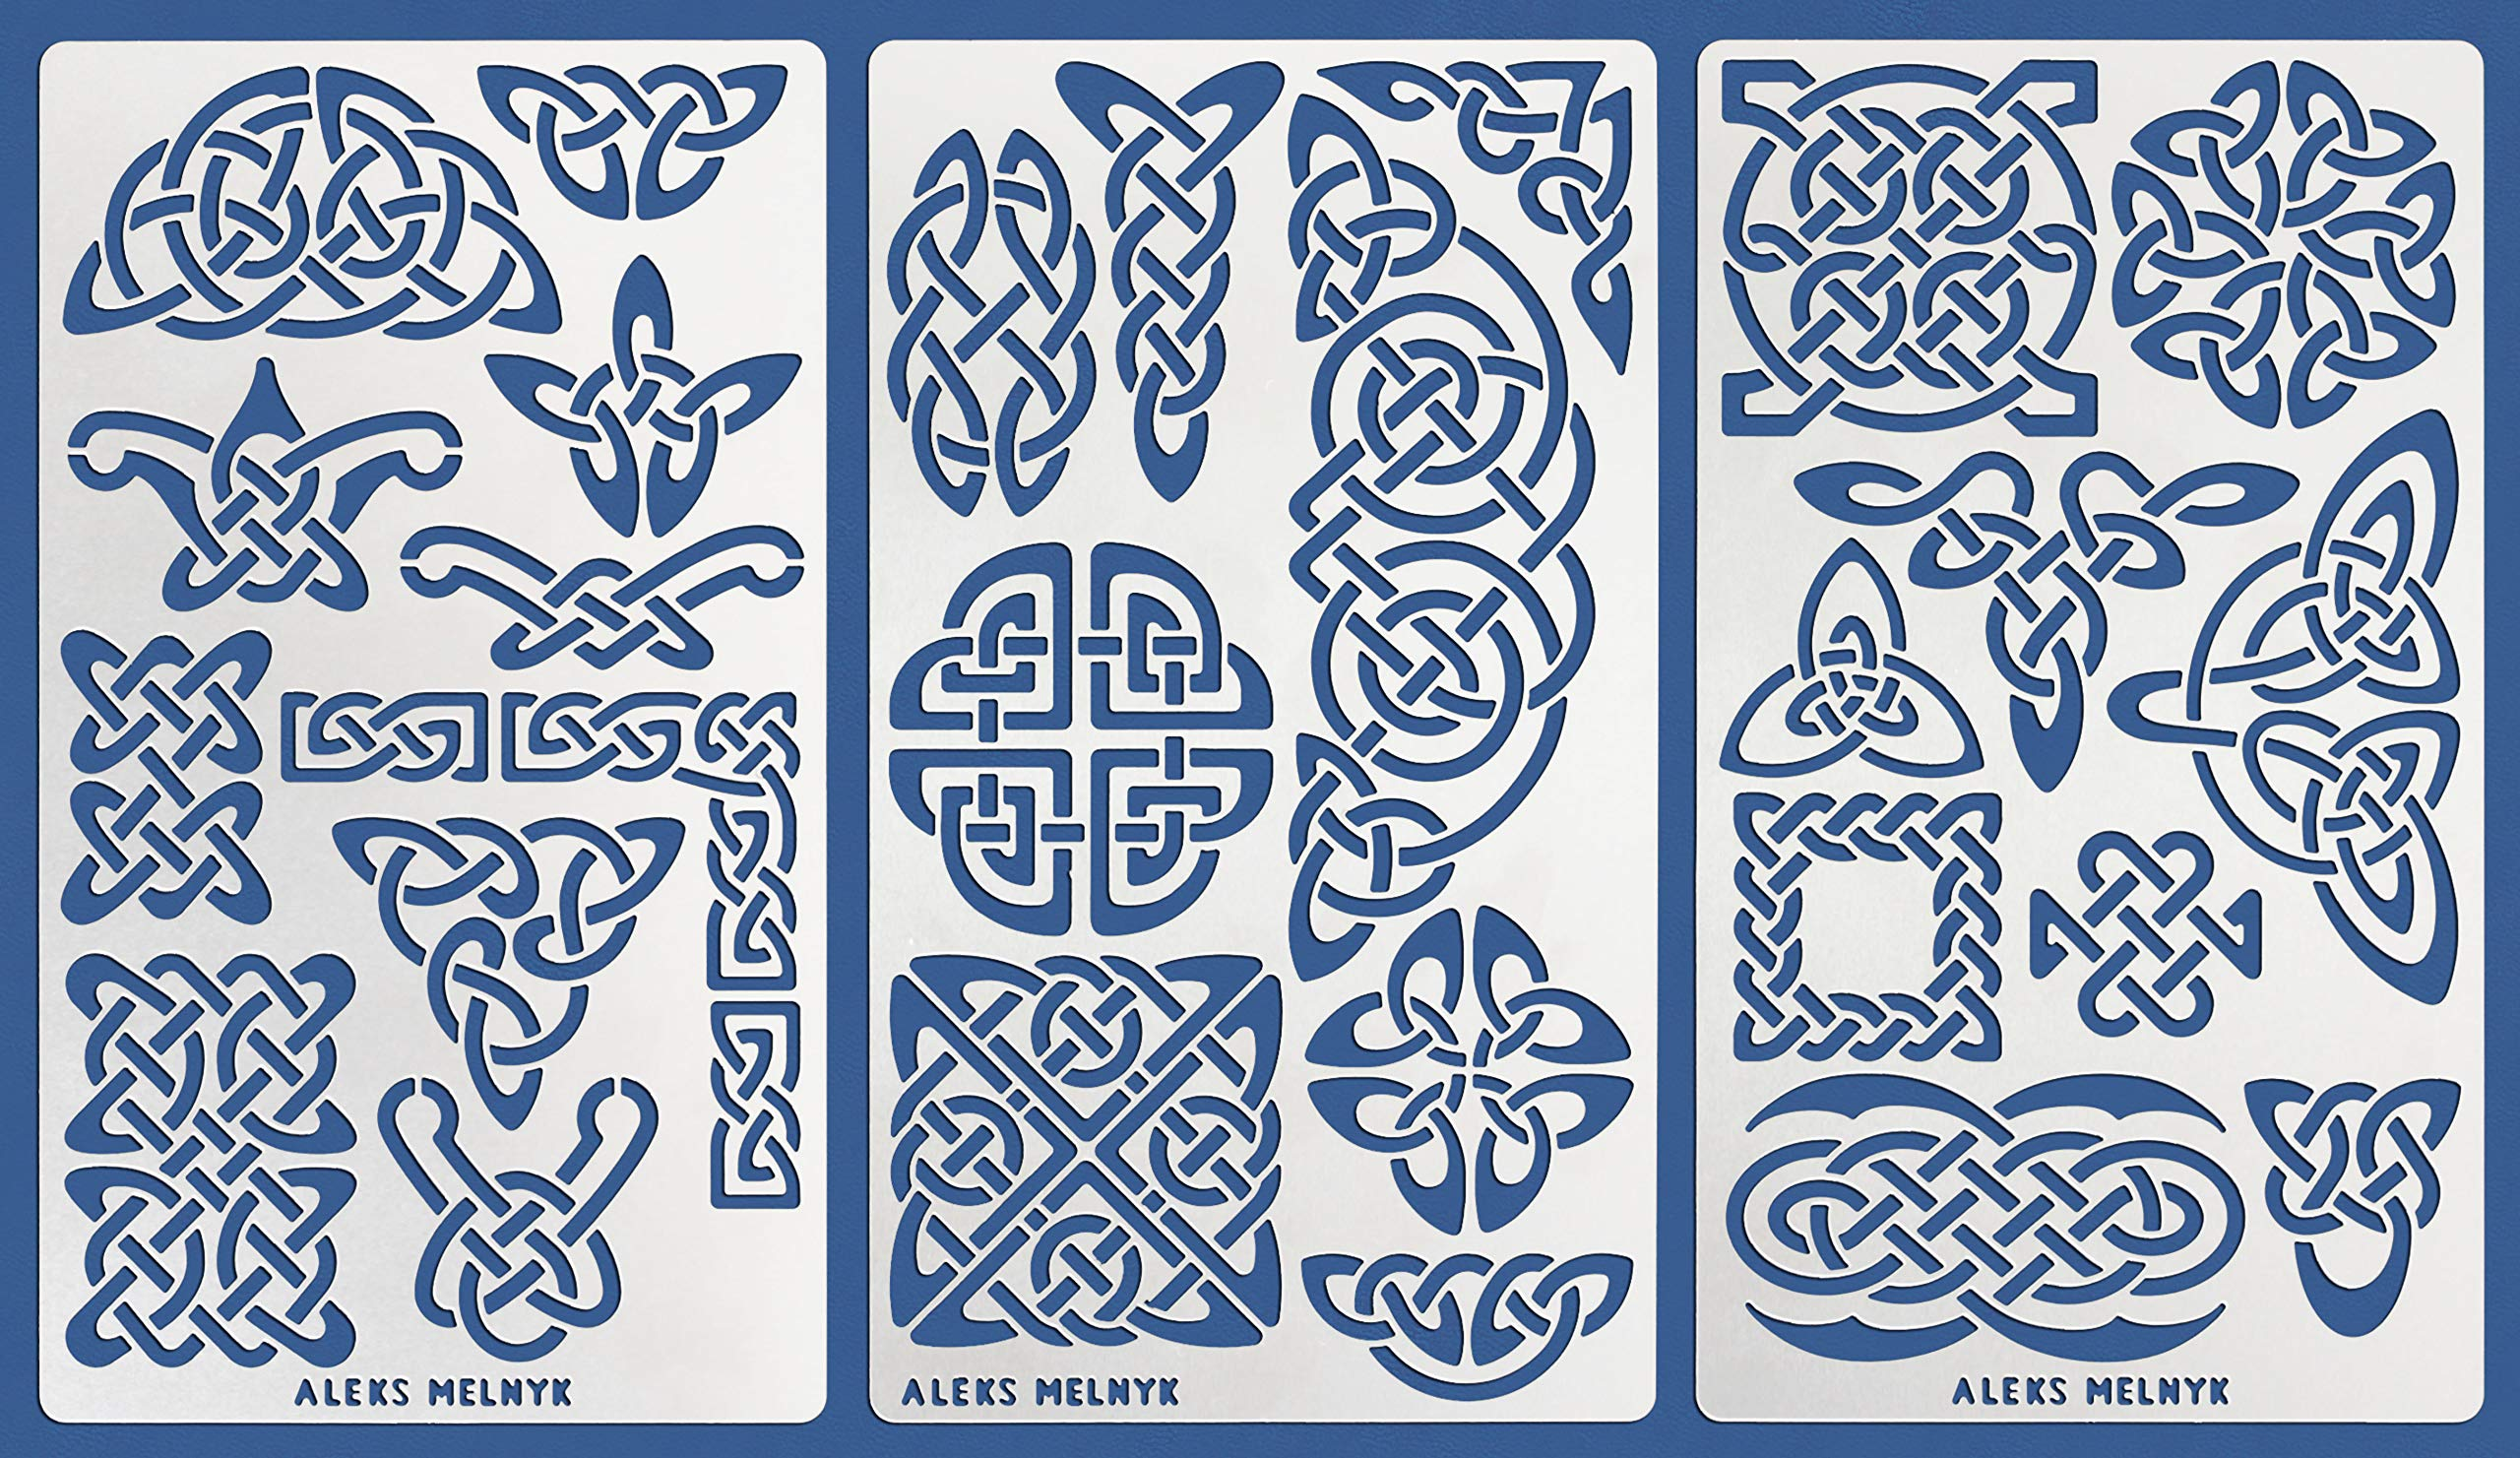 Aleks Melnyk #37 Metal Journal Stencils/Celtic Knot Set/Stainless Steel Stencils Kit 3 PCS/Templates Tool for Wood Burning, Pyrography and Engraving/Scrapbooking/Crafting/DIY by Aleks Melnyk